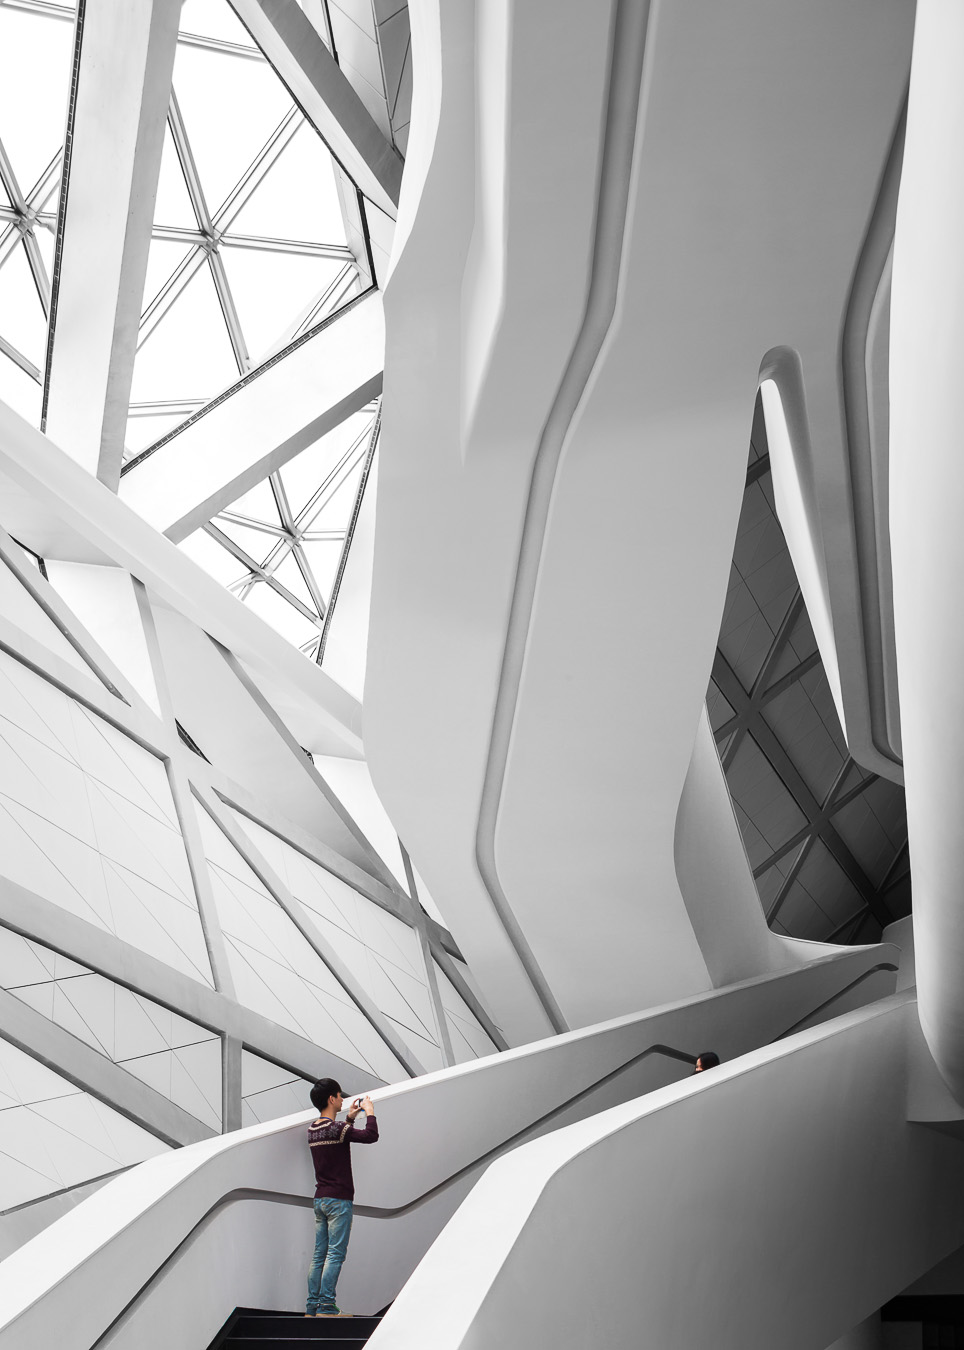 102-doublespace architecture China Guangzhou-Edit.jpg